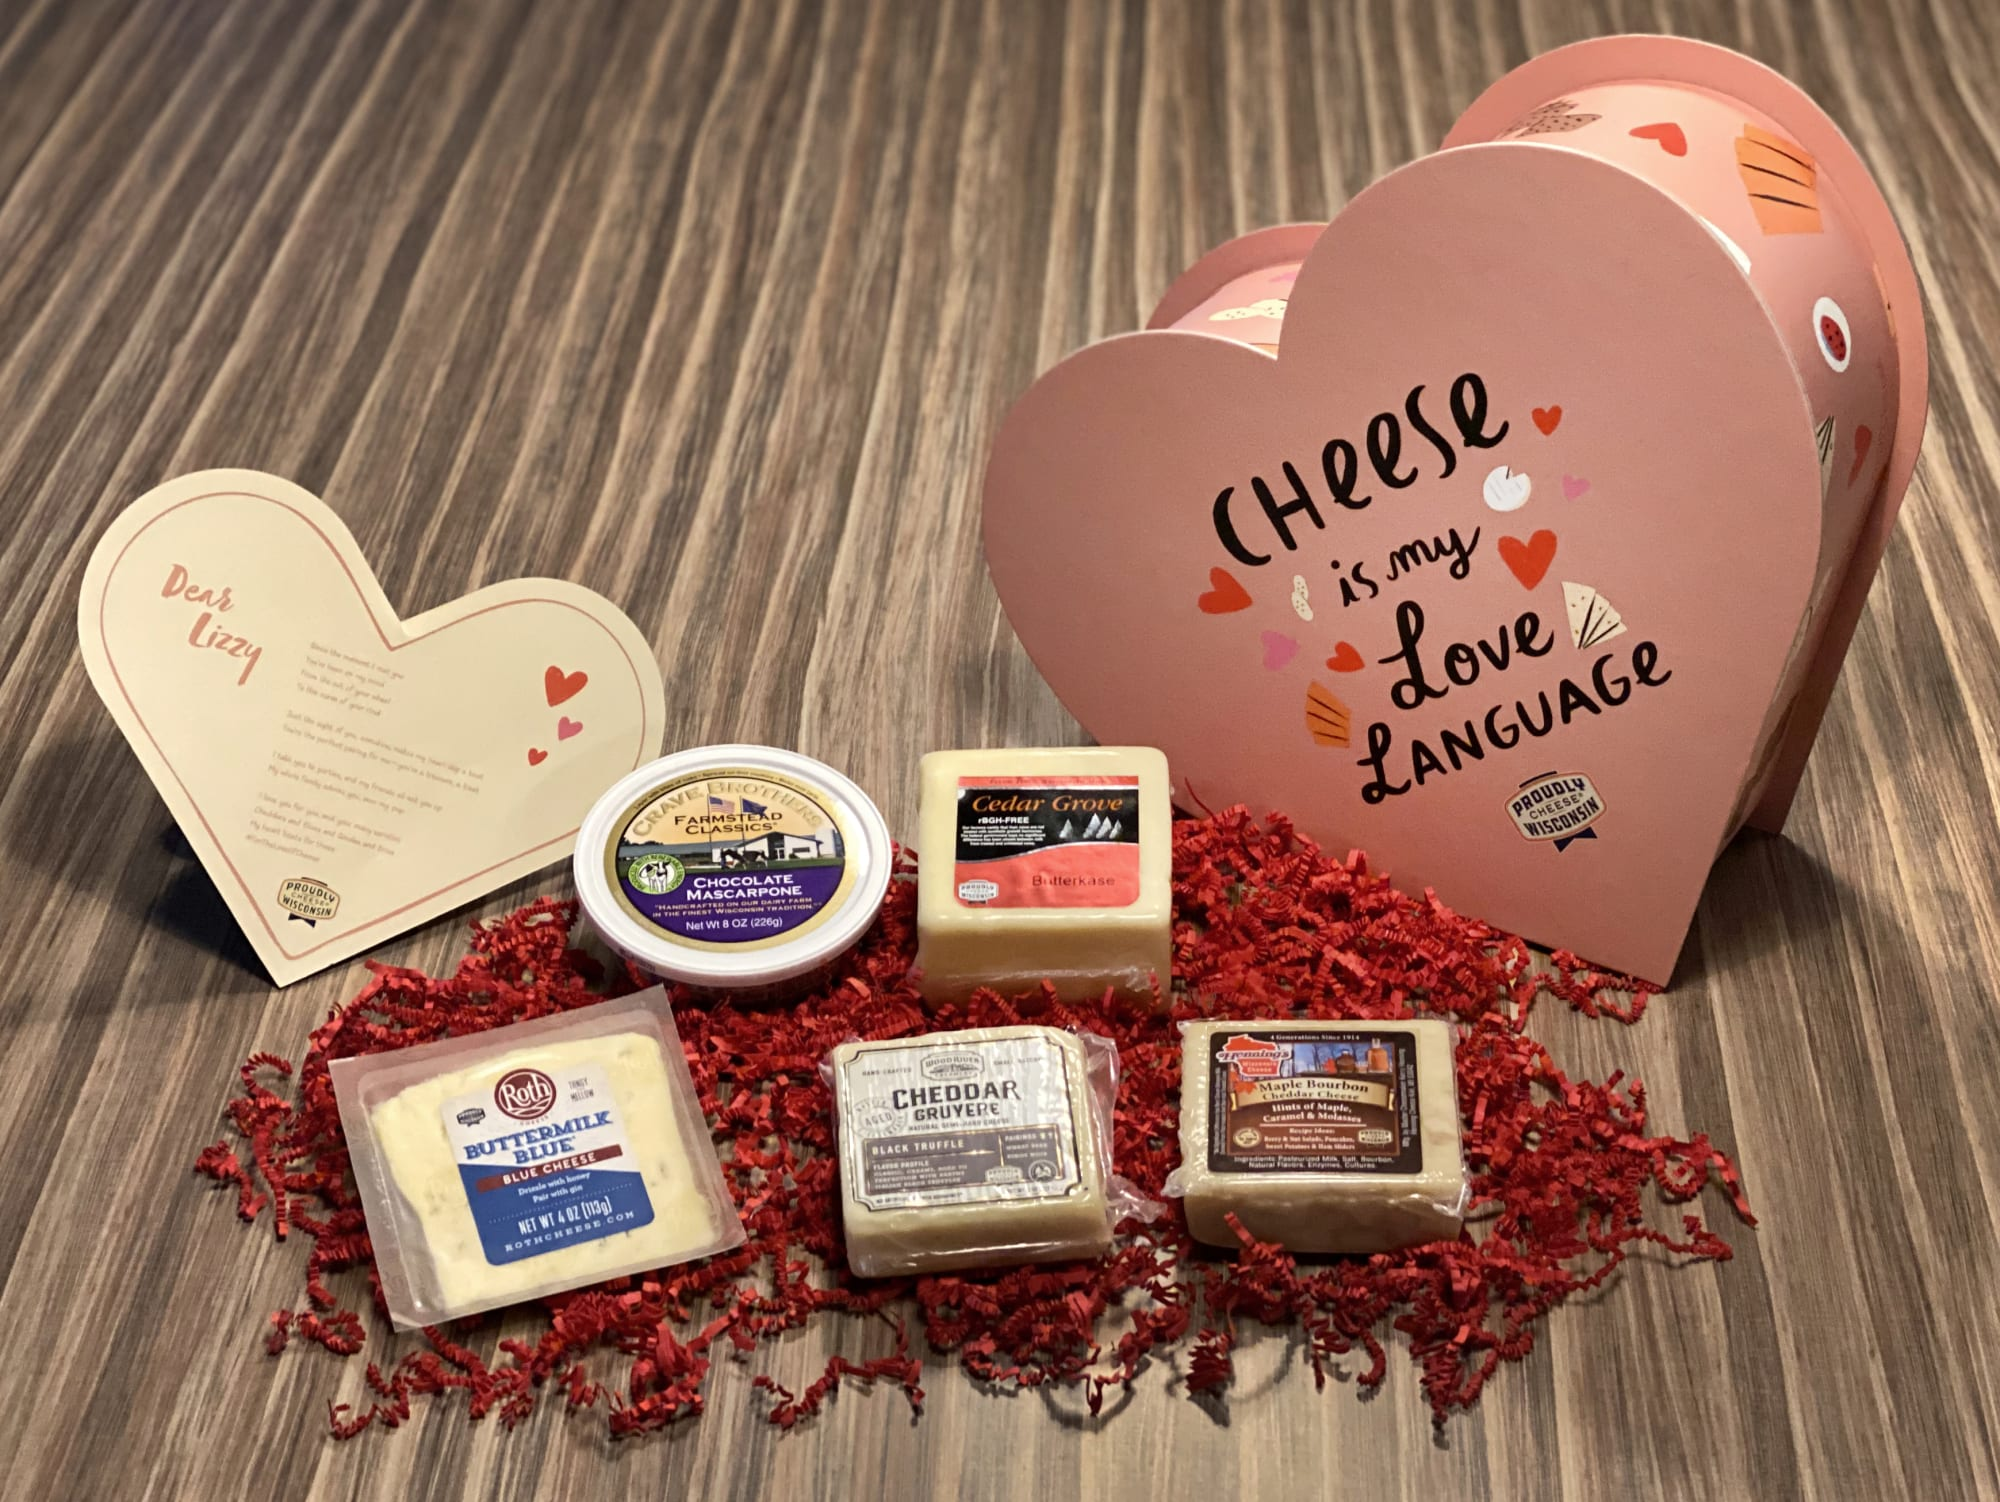 Wisconsin Cheese believes cheese is the universal love language